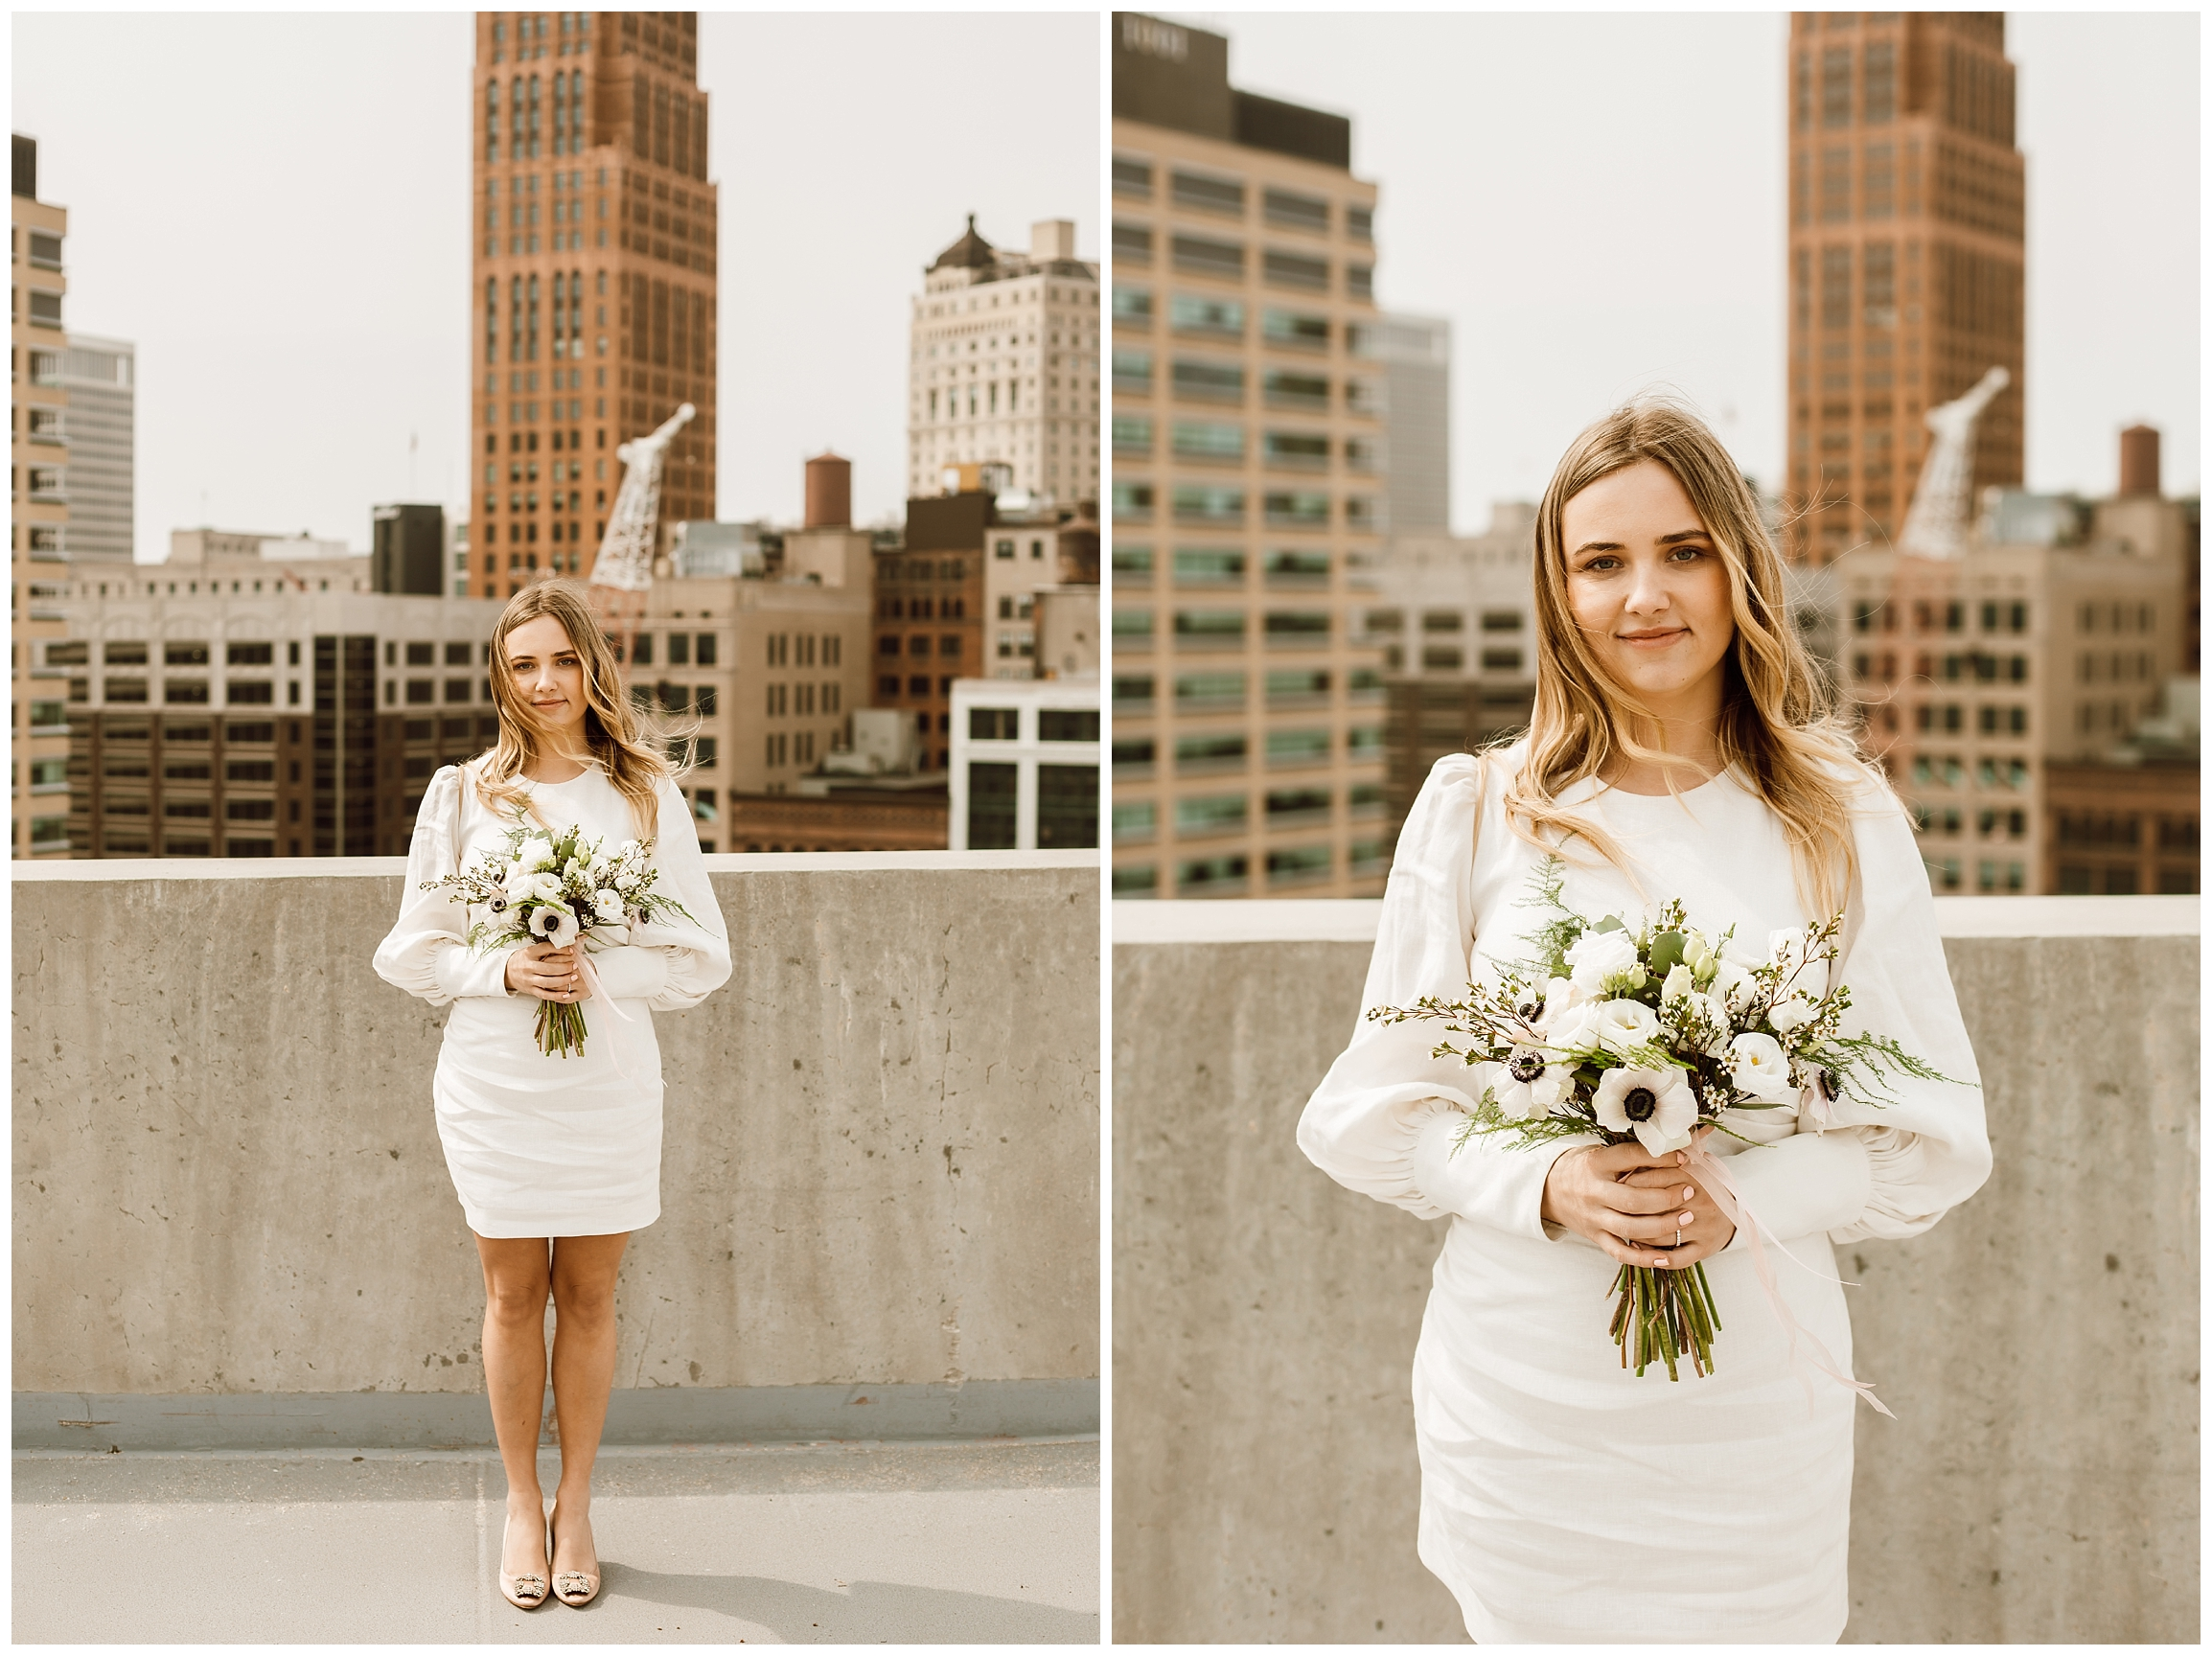 Katie_Vonasek_Detroit_Courthouse_Wedding_Photography34.jpg